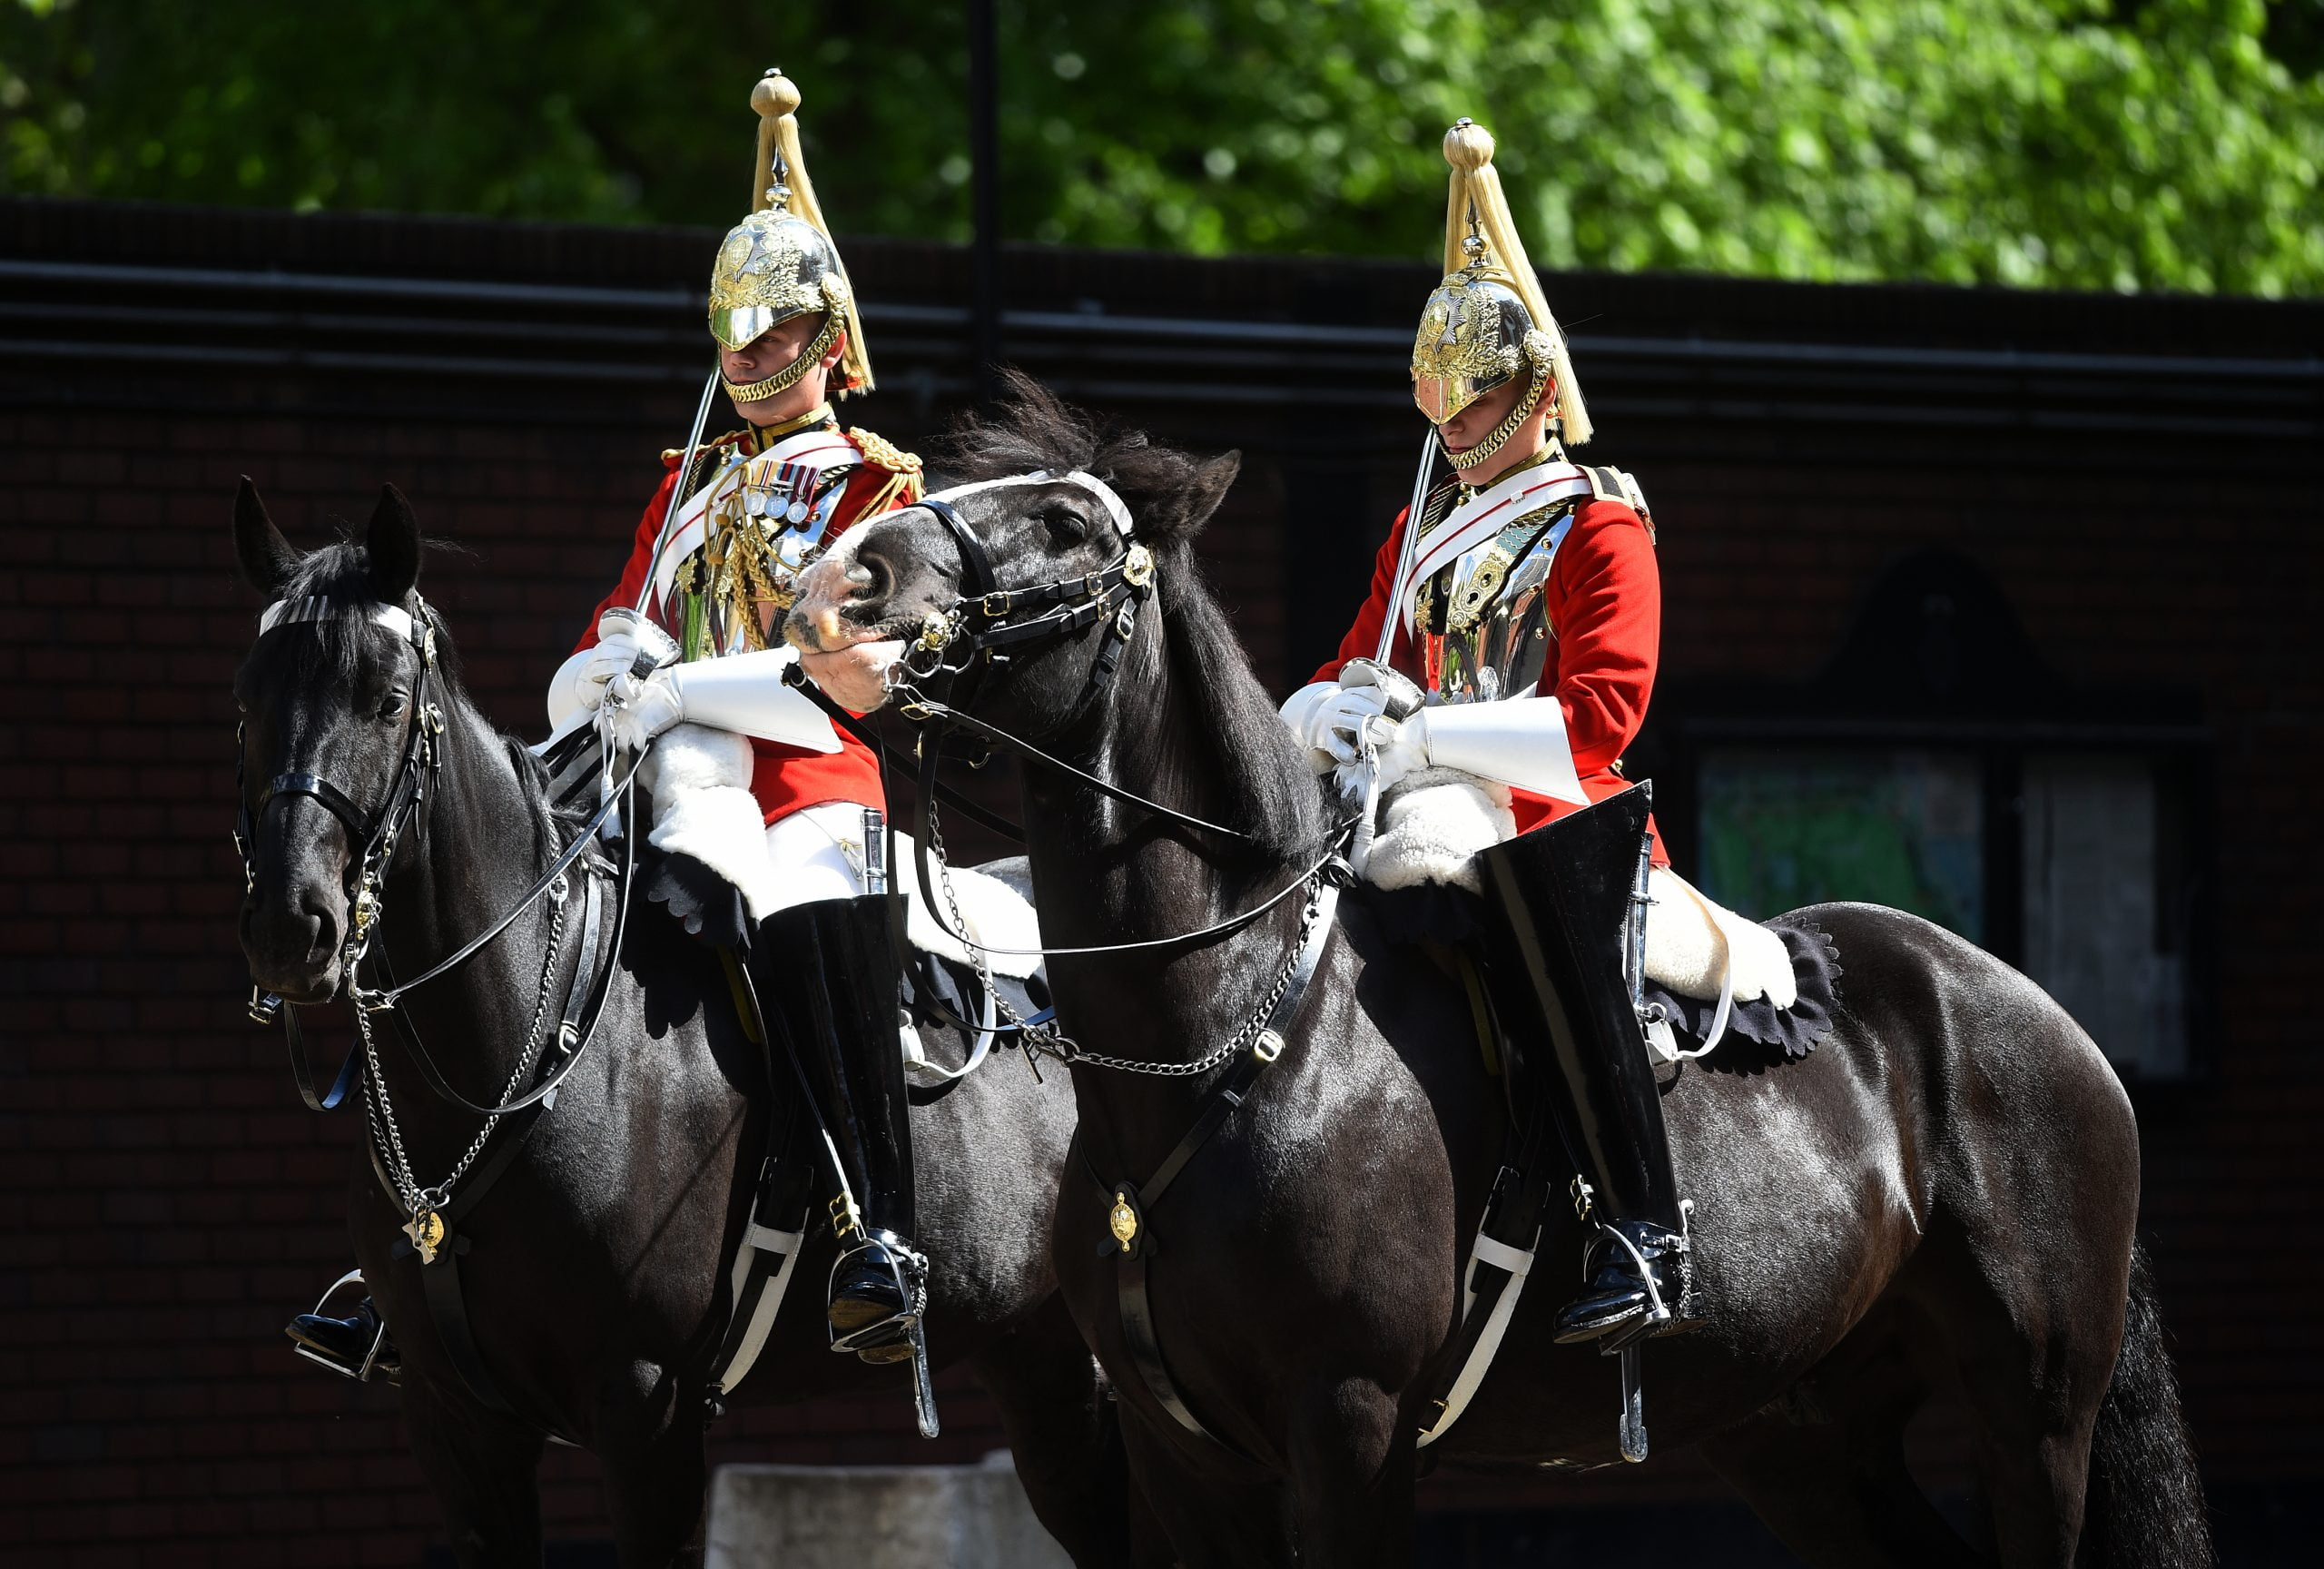 Royal wedding: Household Cavalry prepare for big day